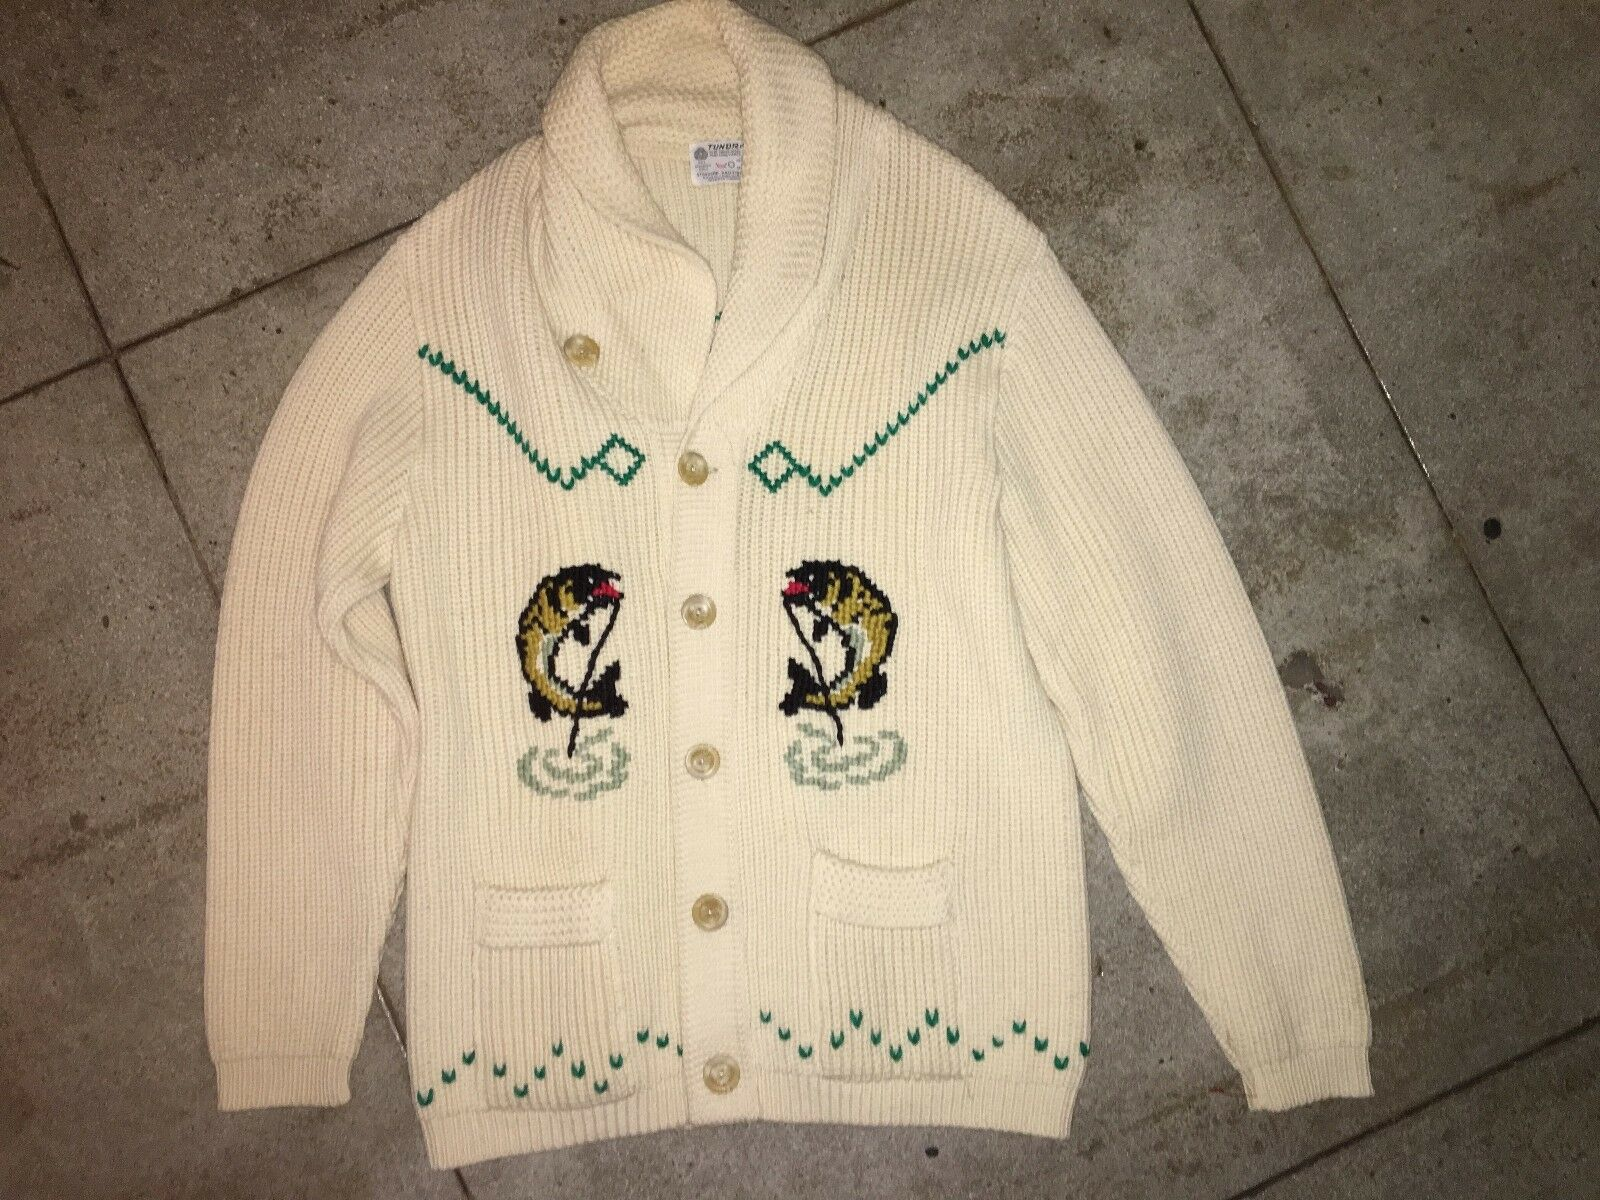 50s Cowichan Wool HAND KNIT Collar Sweater The Dude Lebowski FISHING M fish vtg